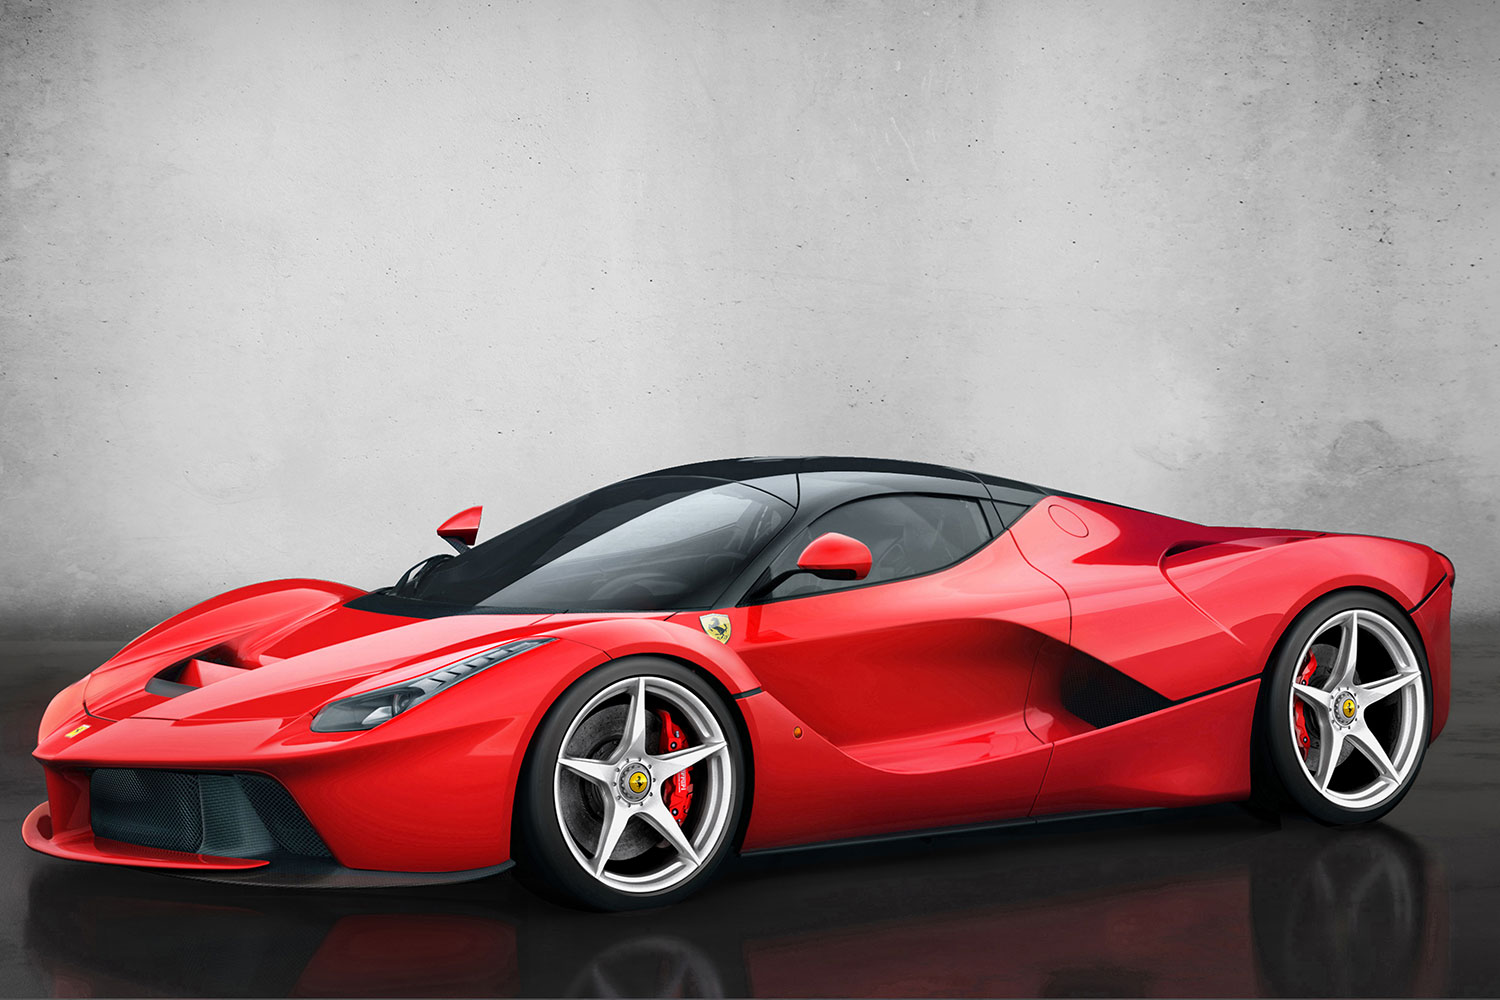 Ferrari will build one final LaFerrari to help Italian natural disaster victims